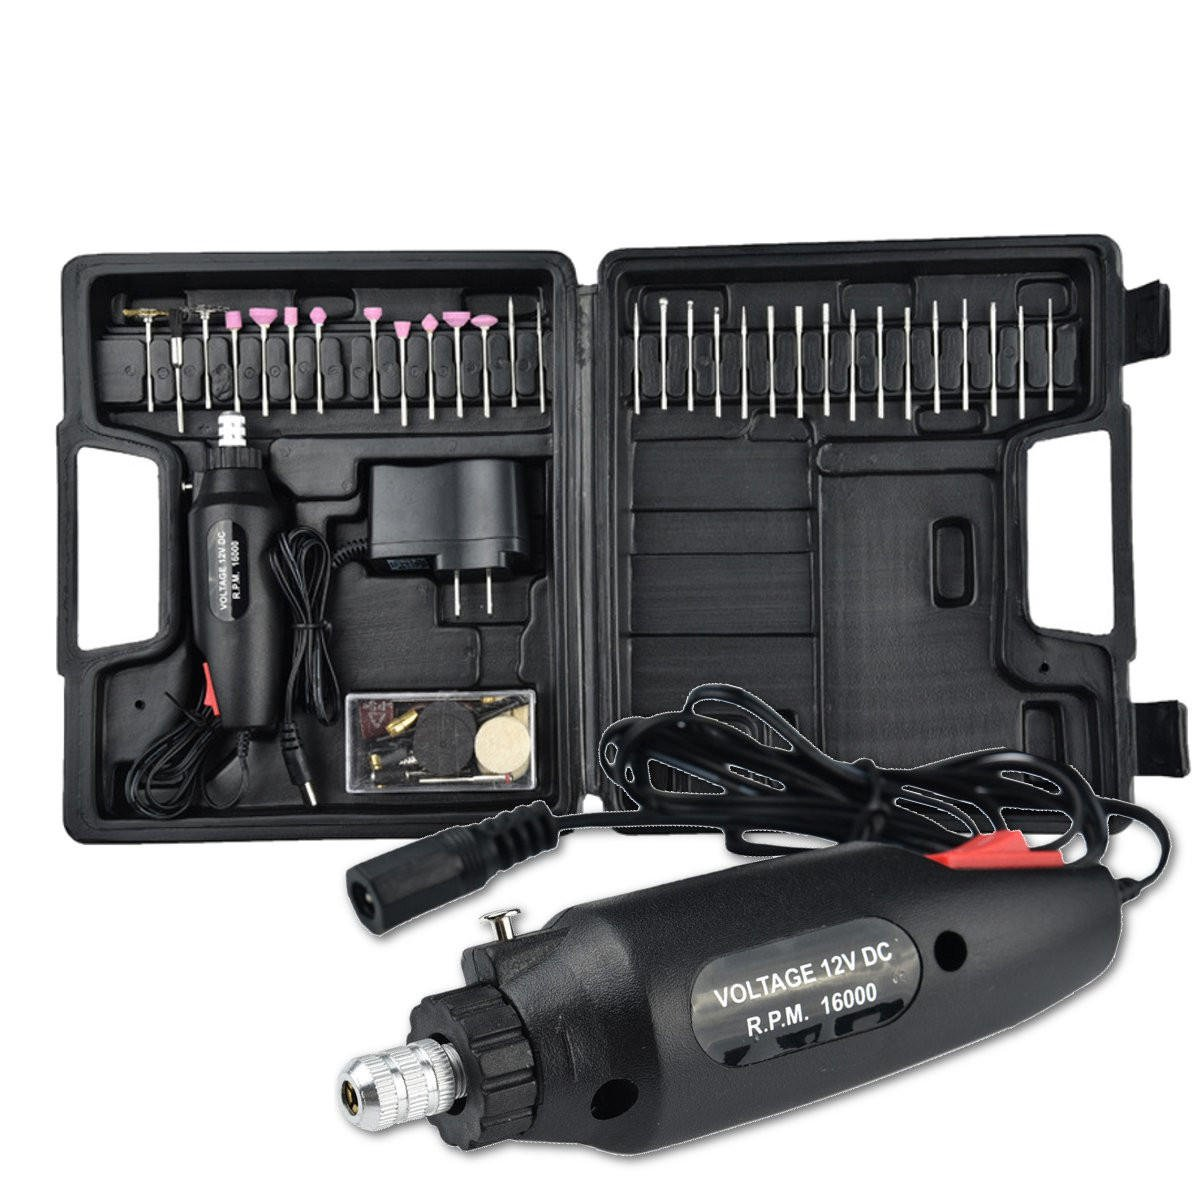 60Pcs Electric Polishing Grinder Rotary Tool Kit 12V Power Drill Machine and Accessories